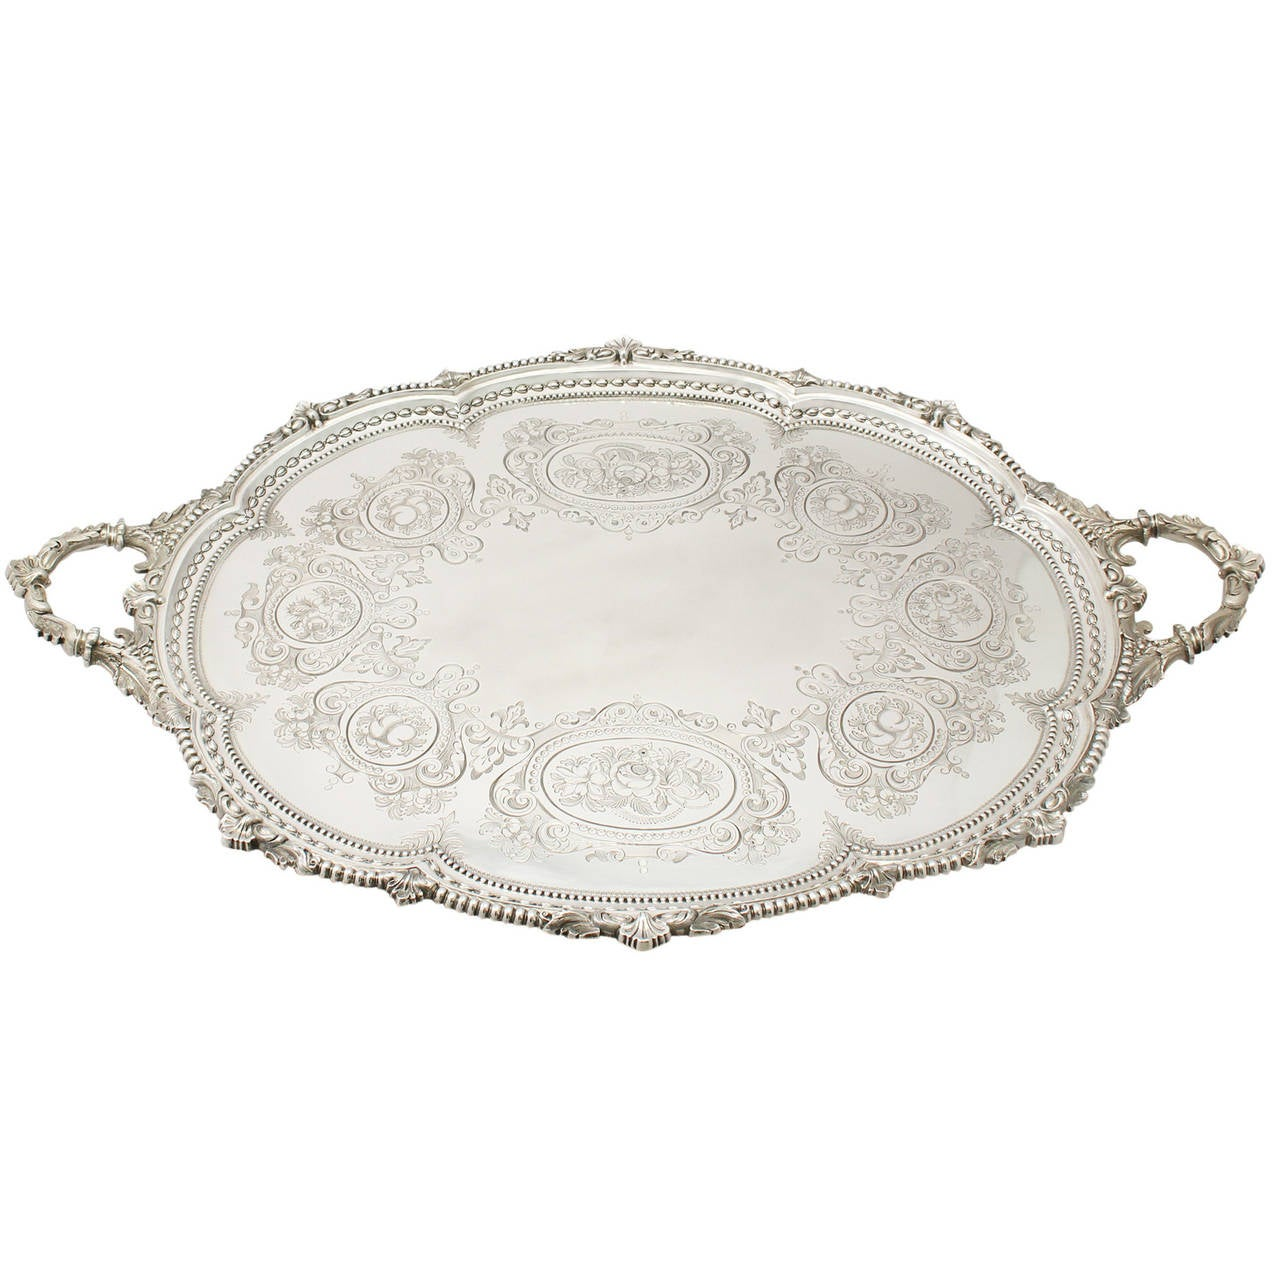 1880s Antique Sterling Silver Tea Tray